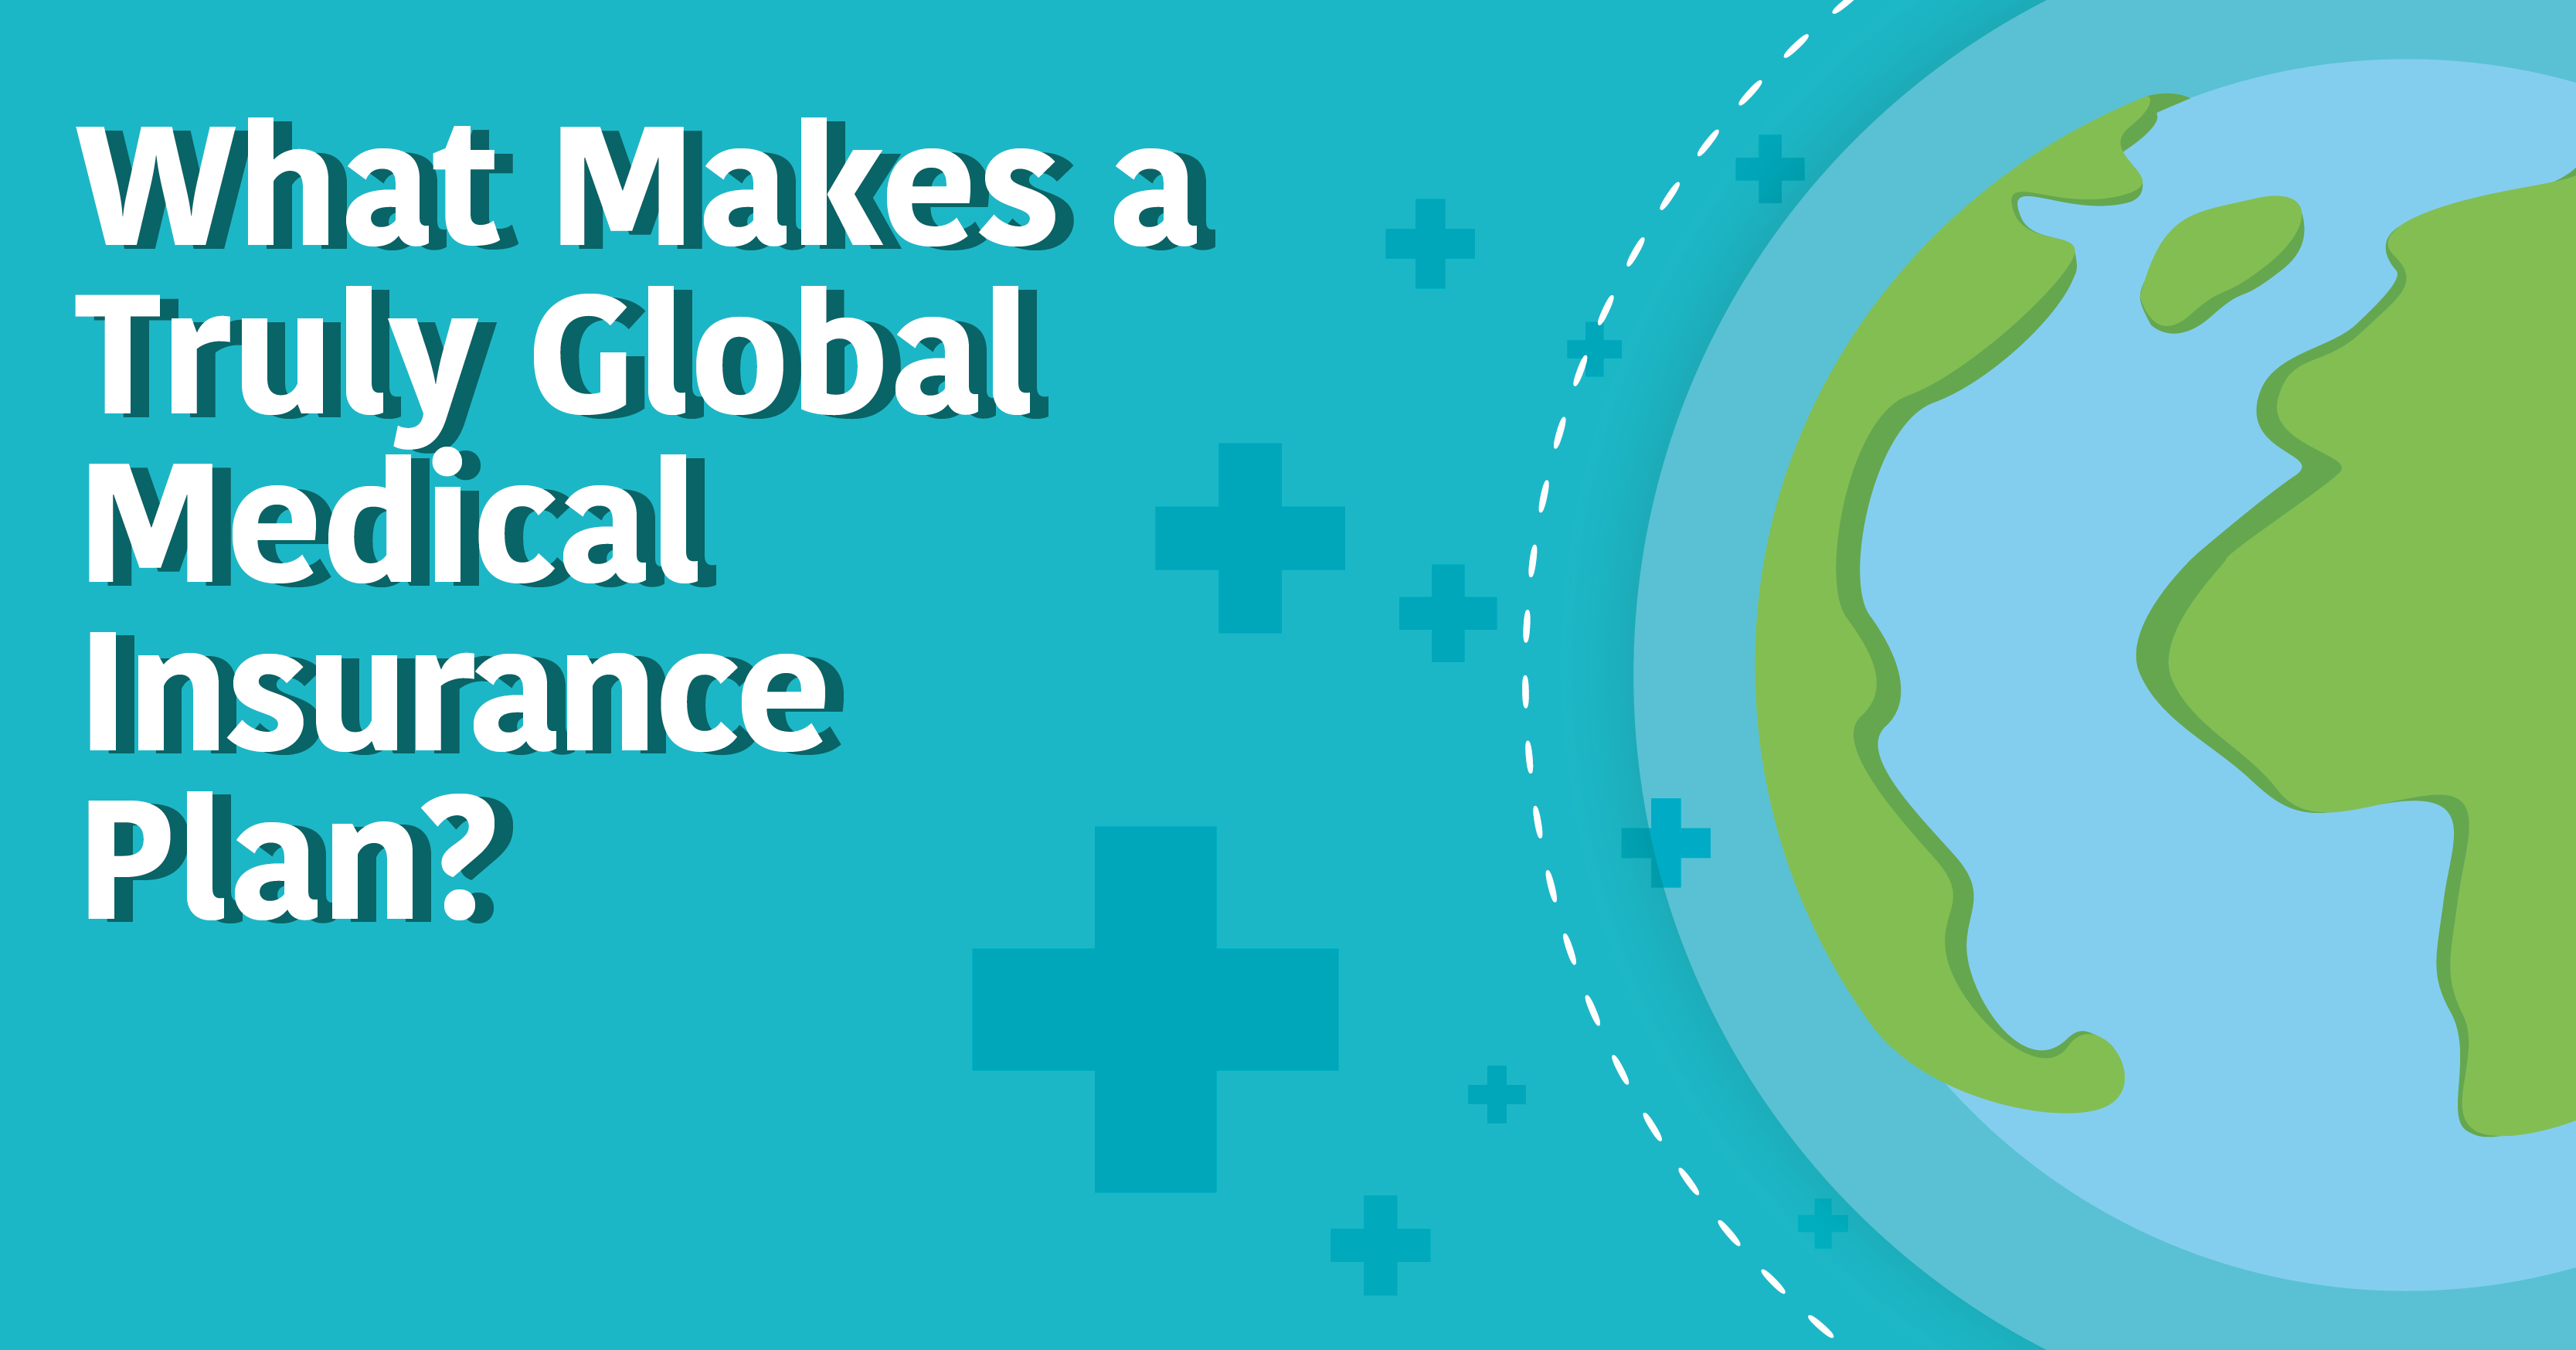 What Makes a Truly Global Medical Insurance Plan?